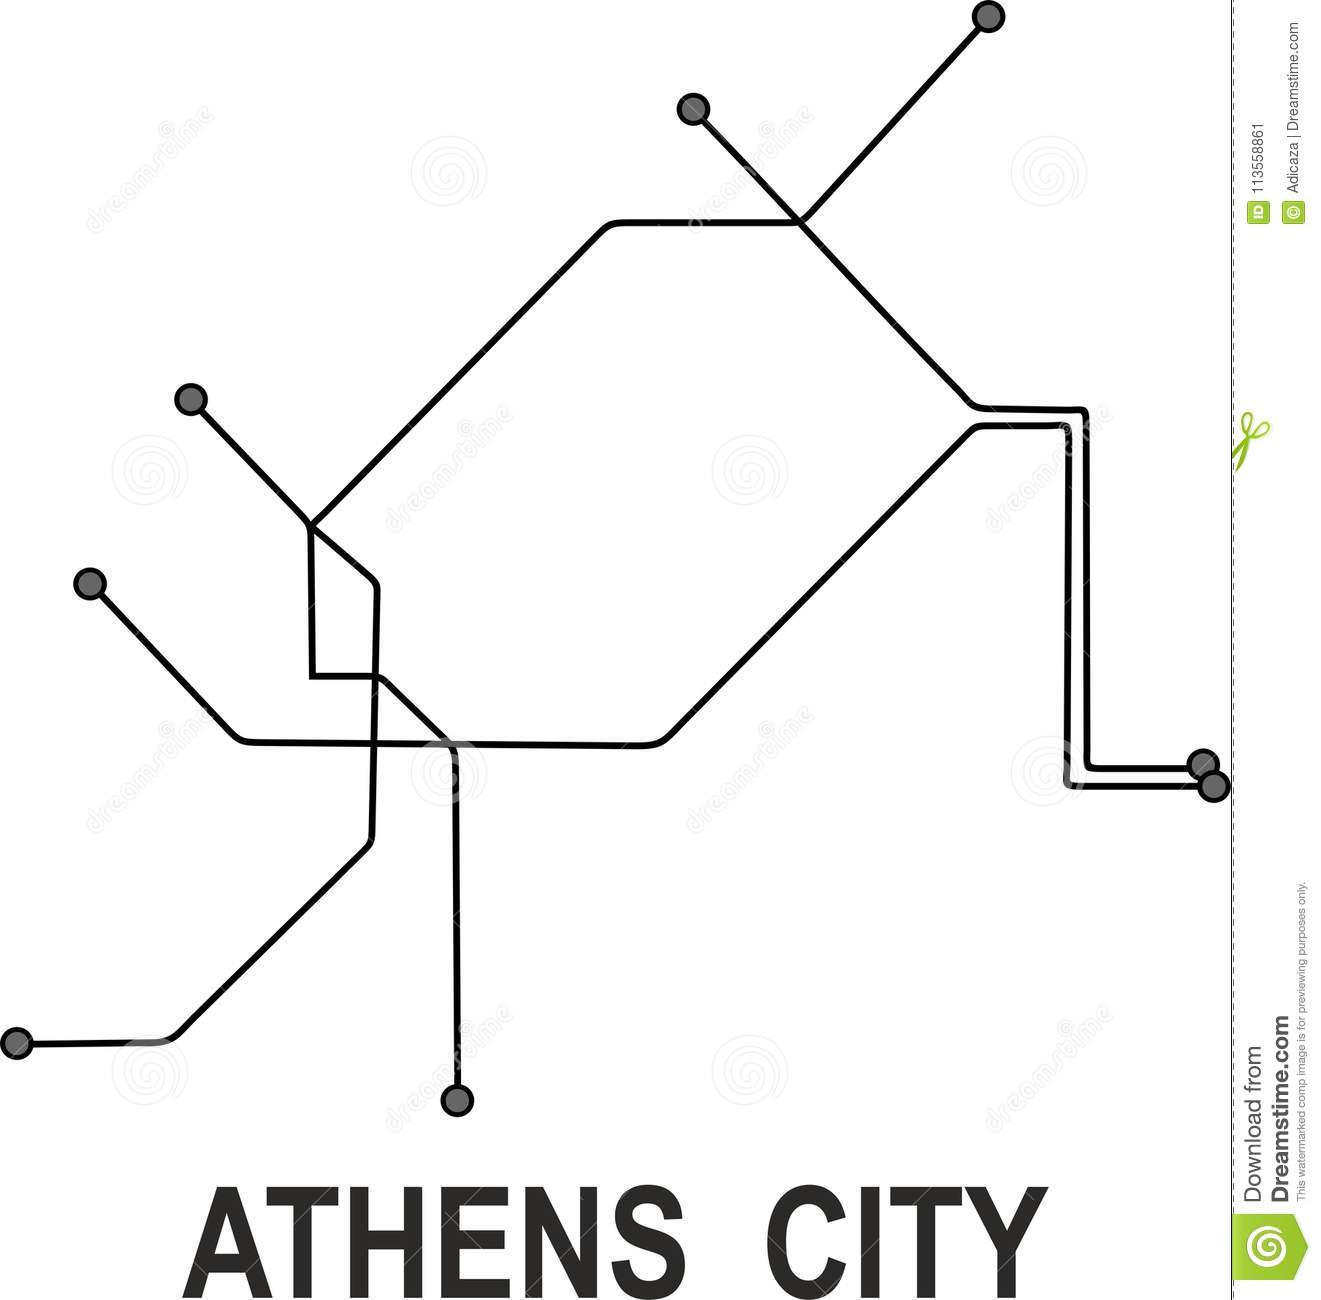 Athens Subway Map.Athens Subway City Map Stock Vector Illustration Of File 113558861